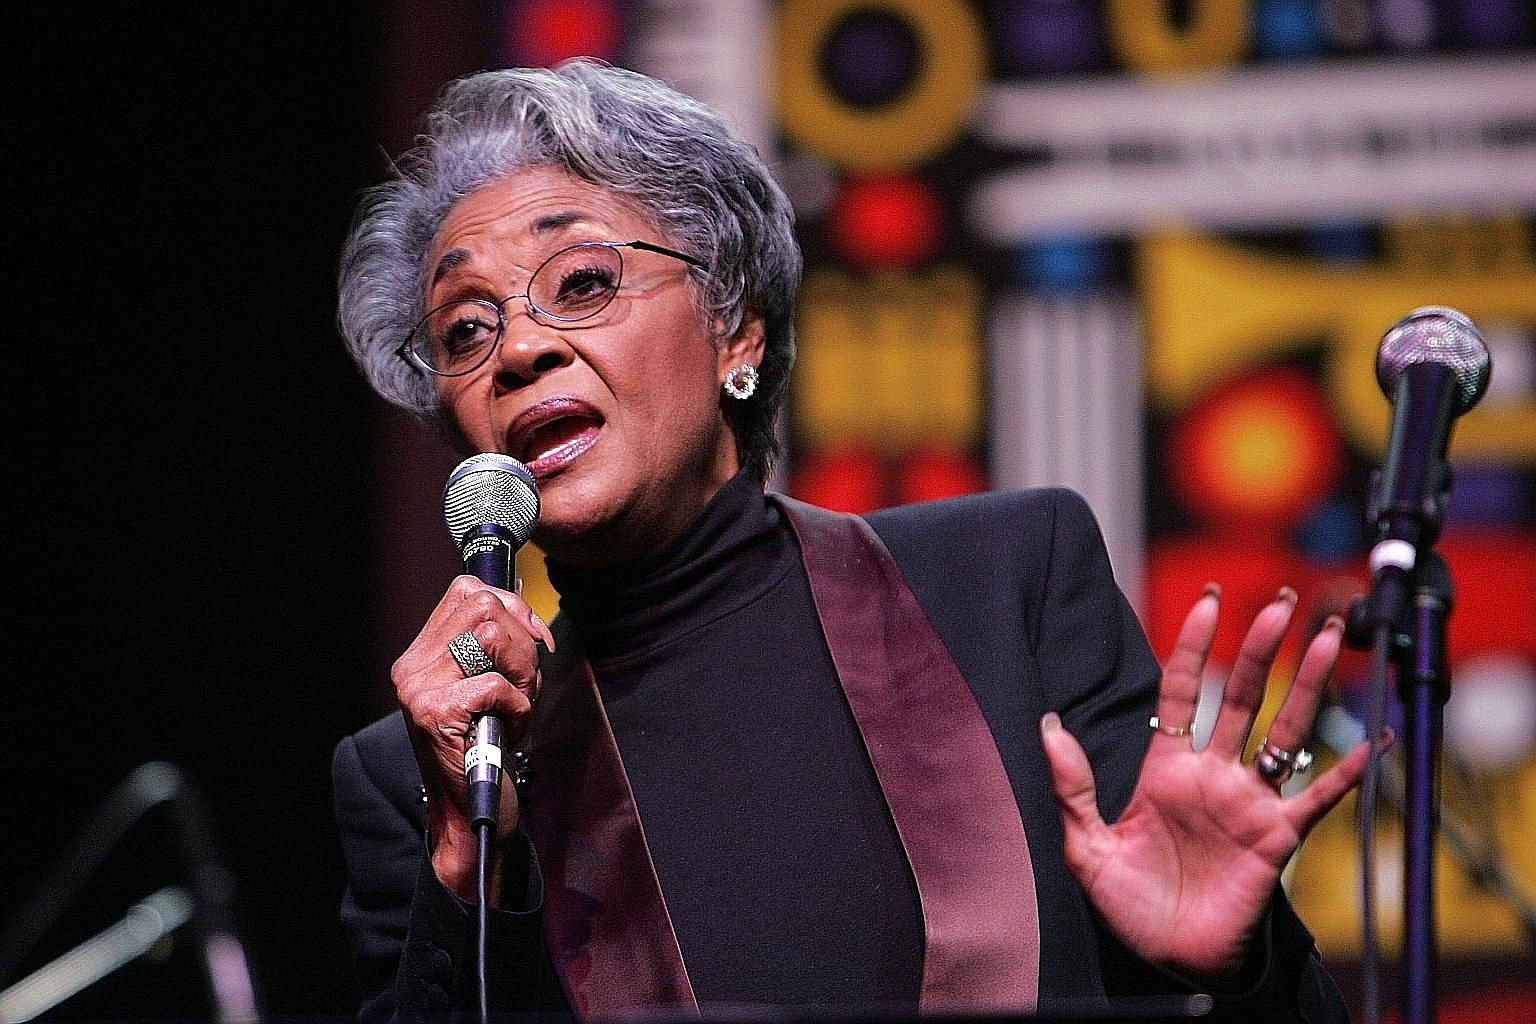 Nancy Wilson performing live onstage at the 17th annual NEA Jazz Masters awards and concert in 2007 in New York City.